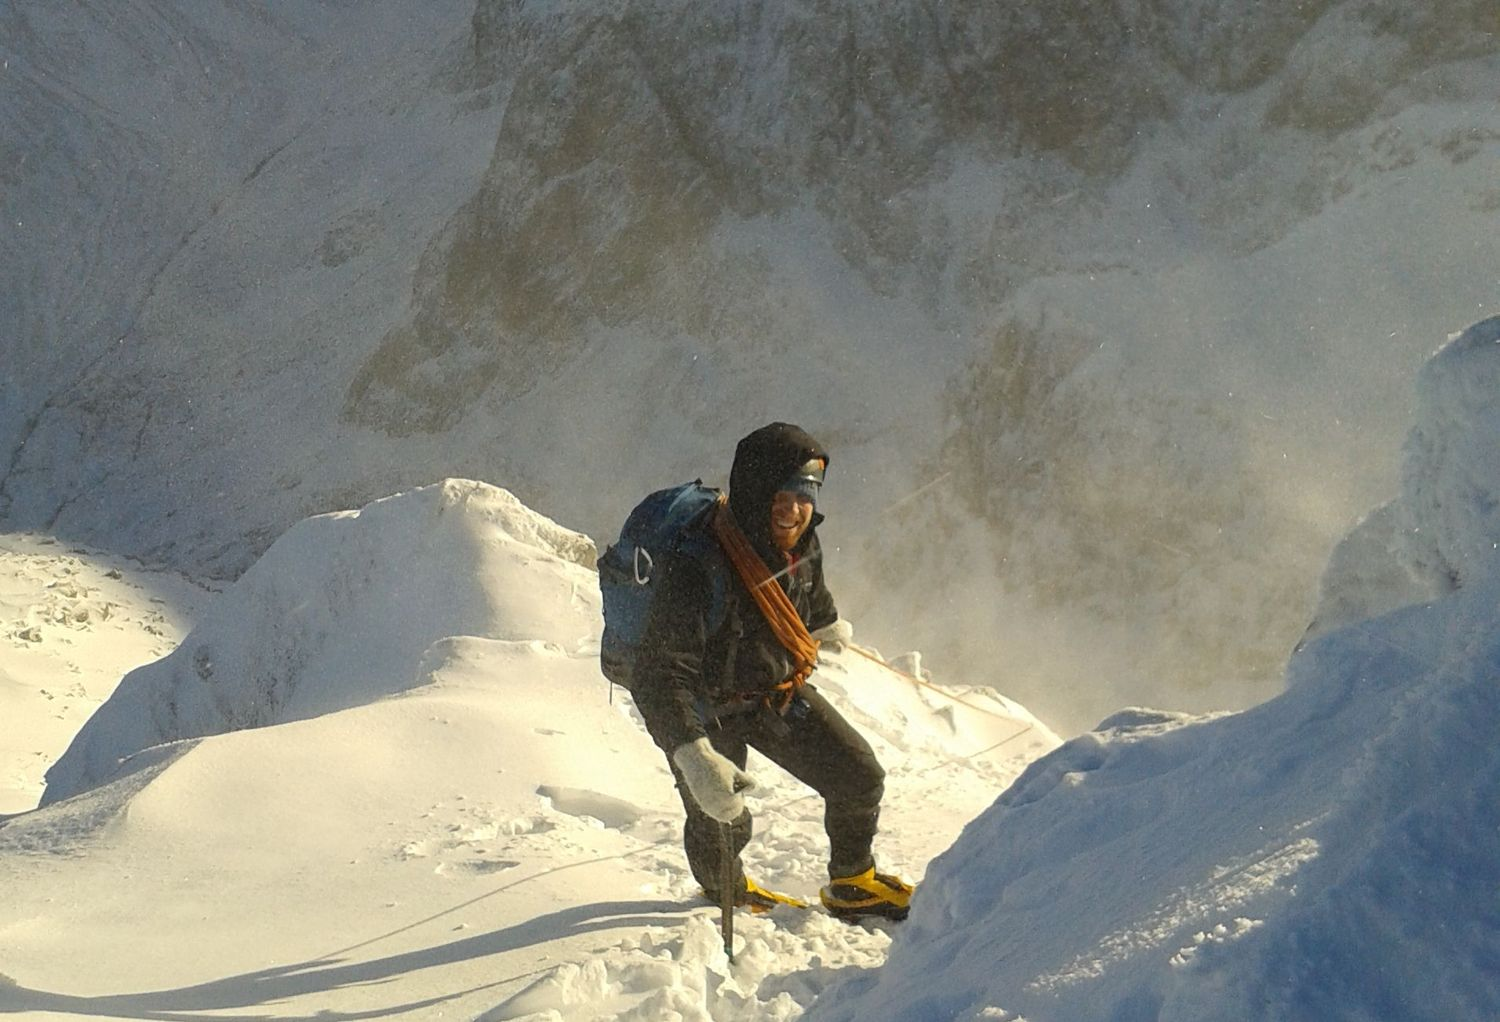 A mountaineer with coils of rope on a snowy mountain - Chris Ensoll Mountain Guide